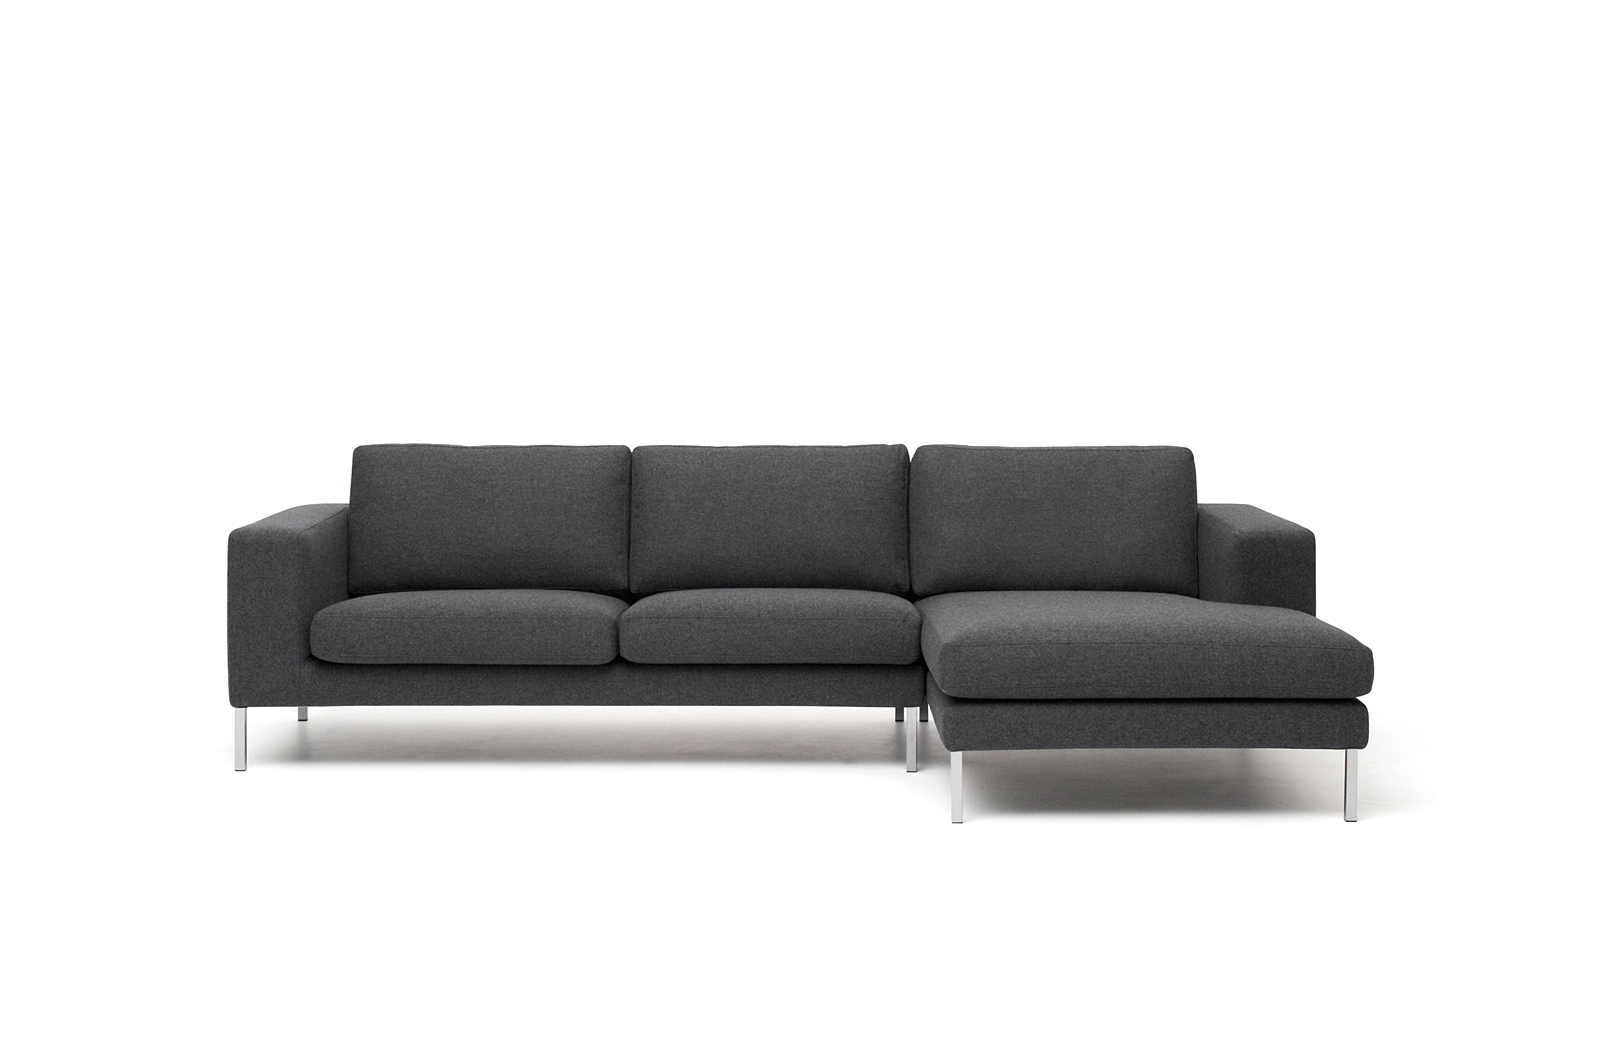 couch height louis with chaise loose contemporary carlin width products pillows back trim sectional item group couches threshold sofa jonathan